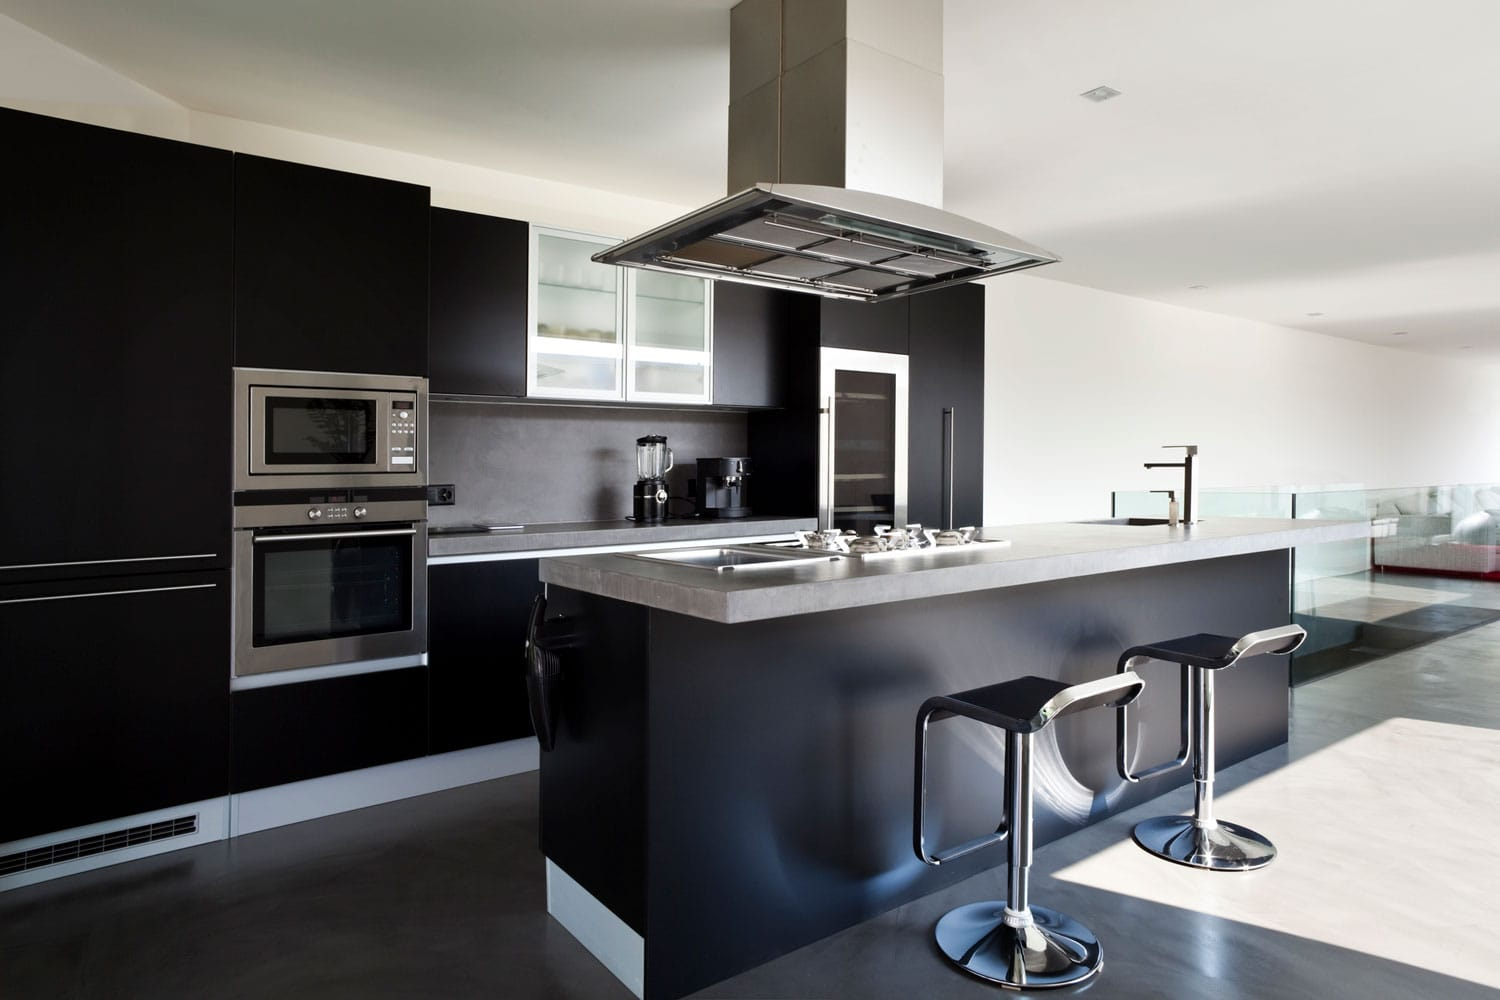 A beautiful new apartment with kitchen chimney